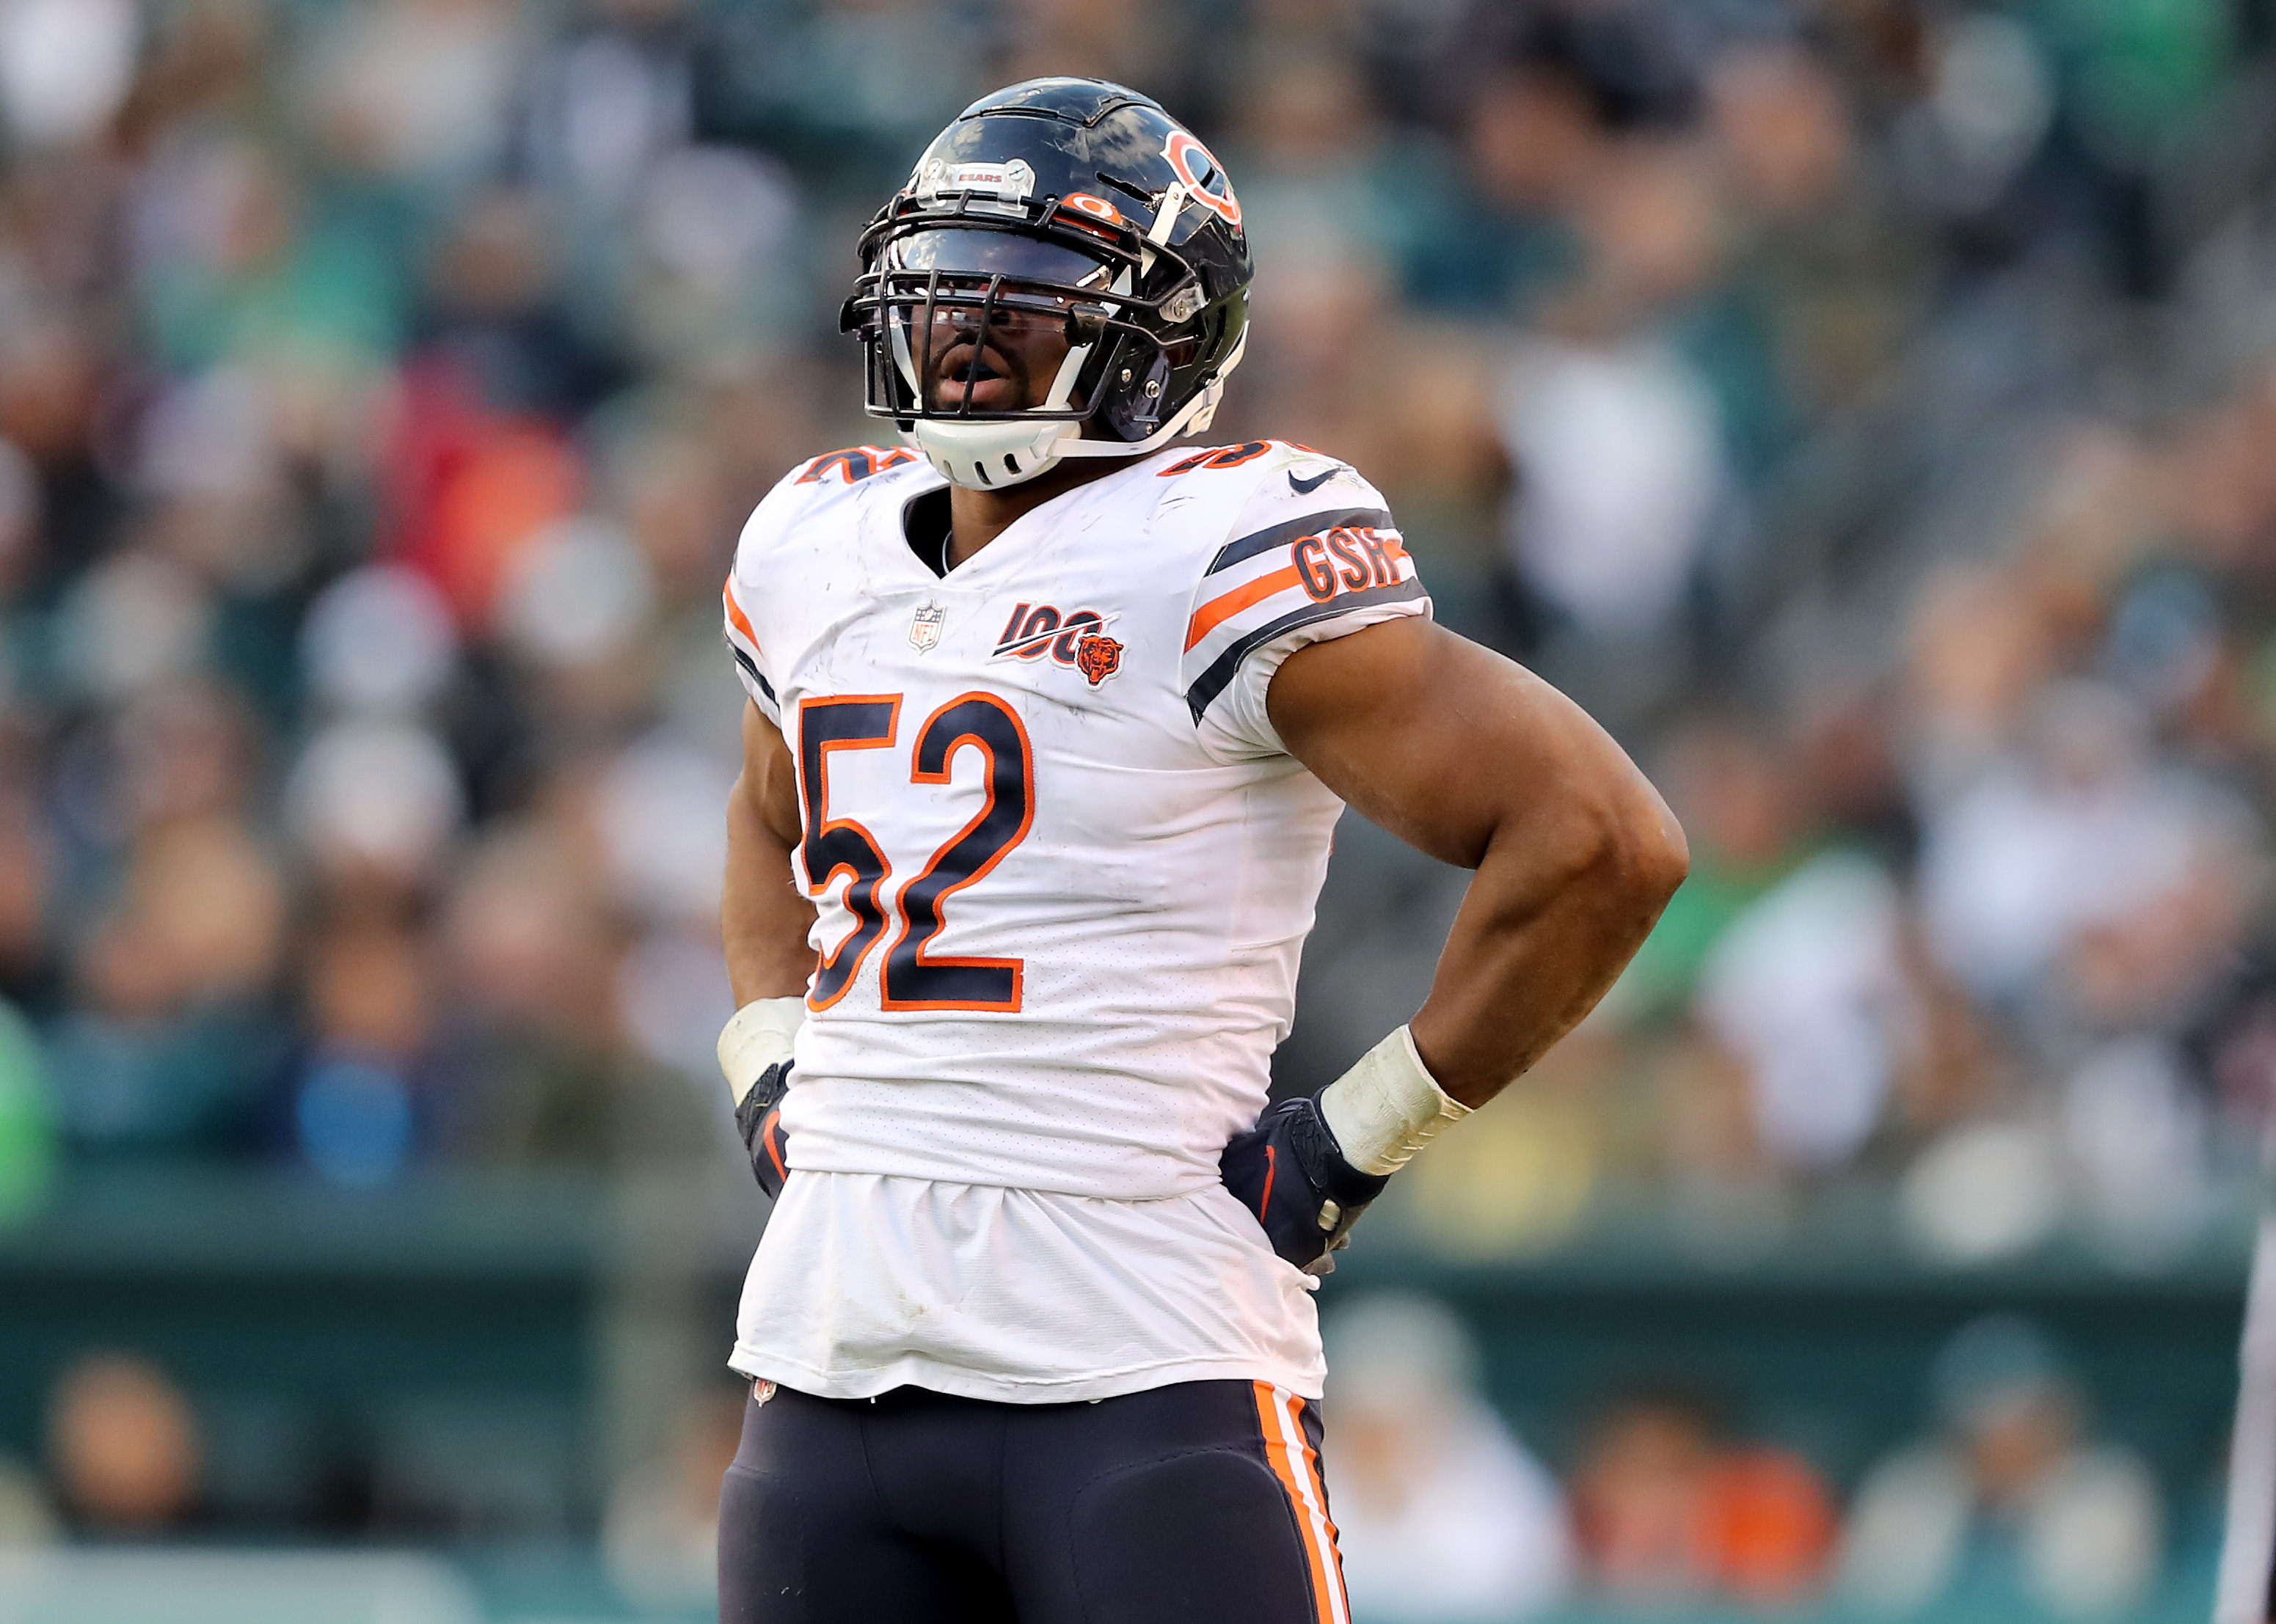 Khalil Mack hasn't been nearly the force this season that he was in 2018. The Bears linebacker has had a total of one sack in the past five games.